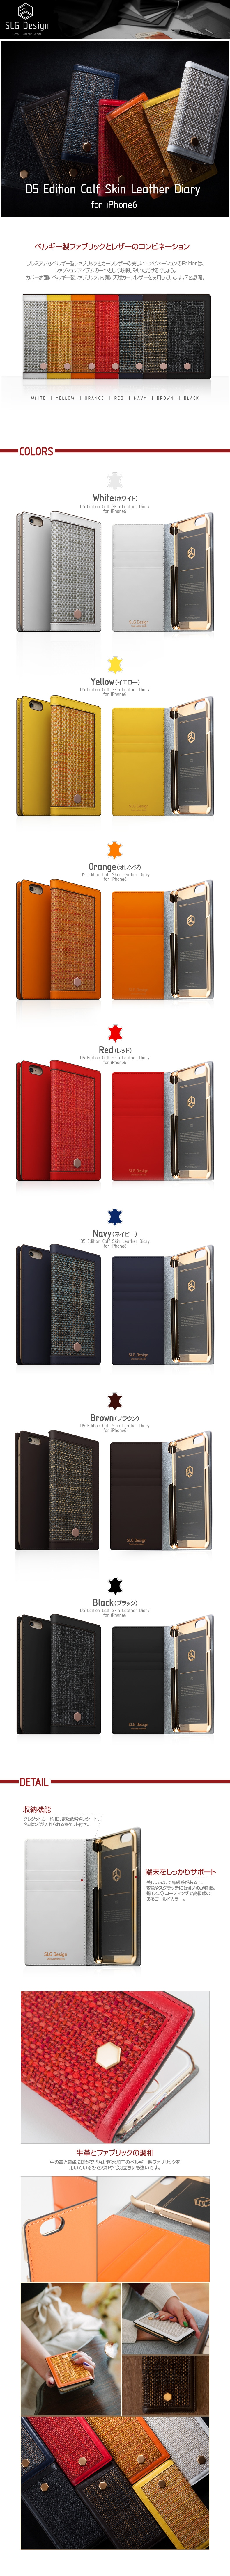 【iPhone6 ケース】 SLG Design D5 Edition Calf Skin Leather Diary